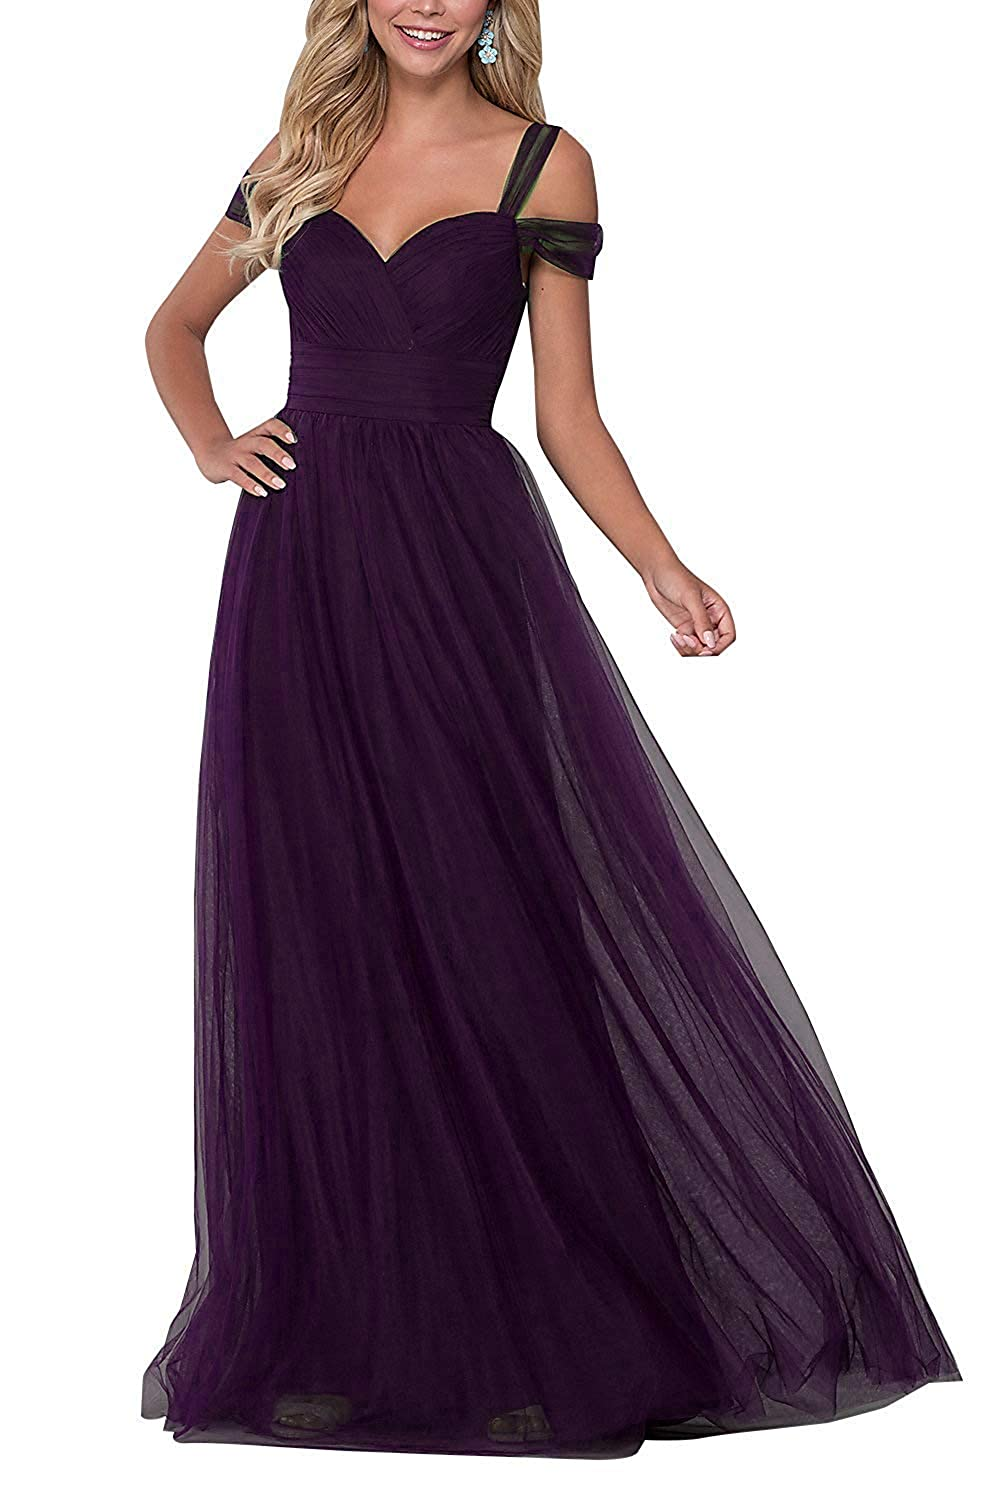 Plum liangjinsmkj Bridesmaid Dresses Long Off Shoulder Ruffled Tulle Spaghetti Strap Prom Gowns for Women